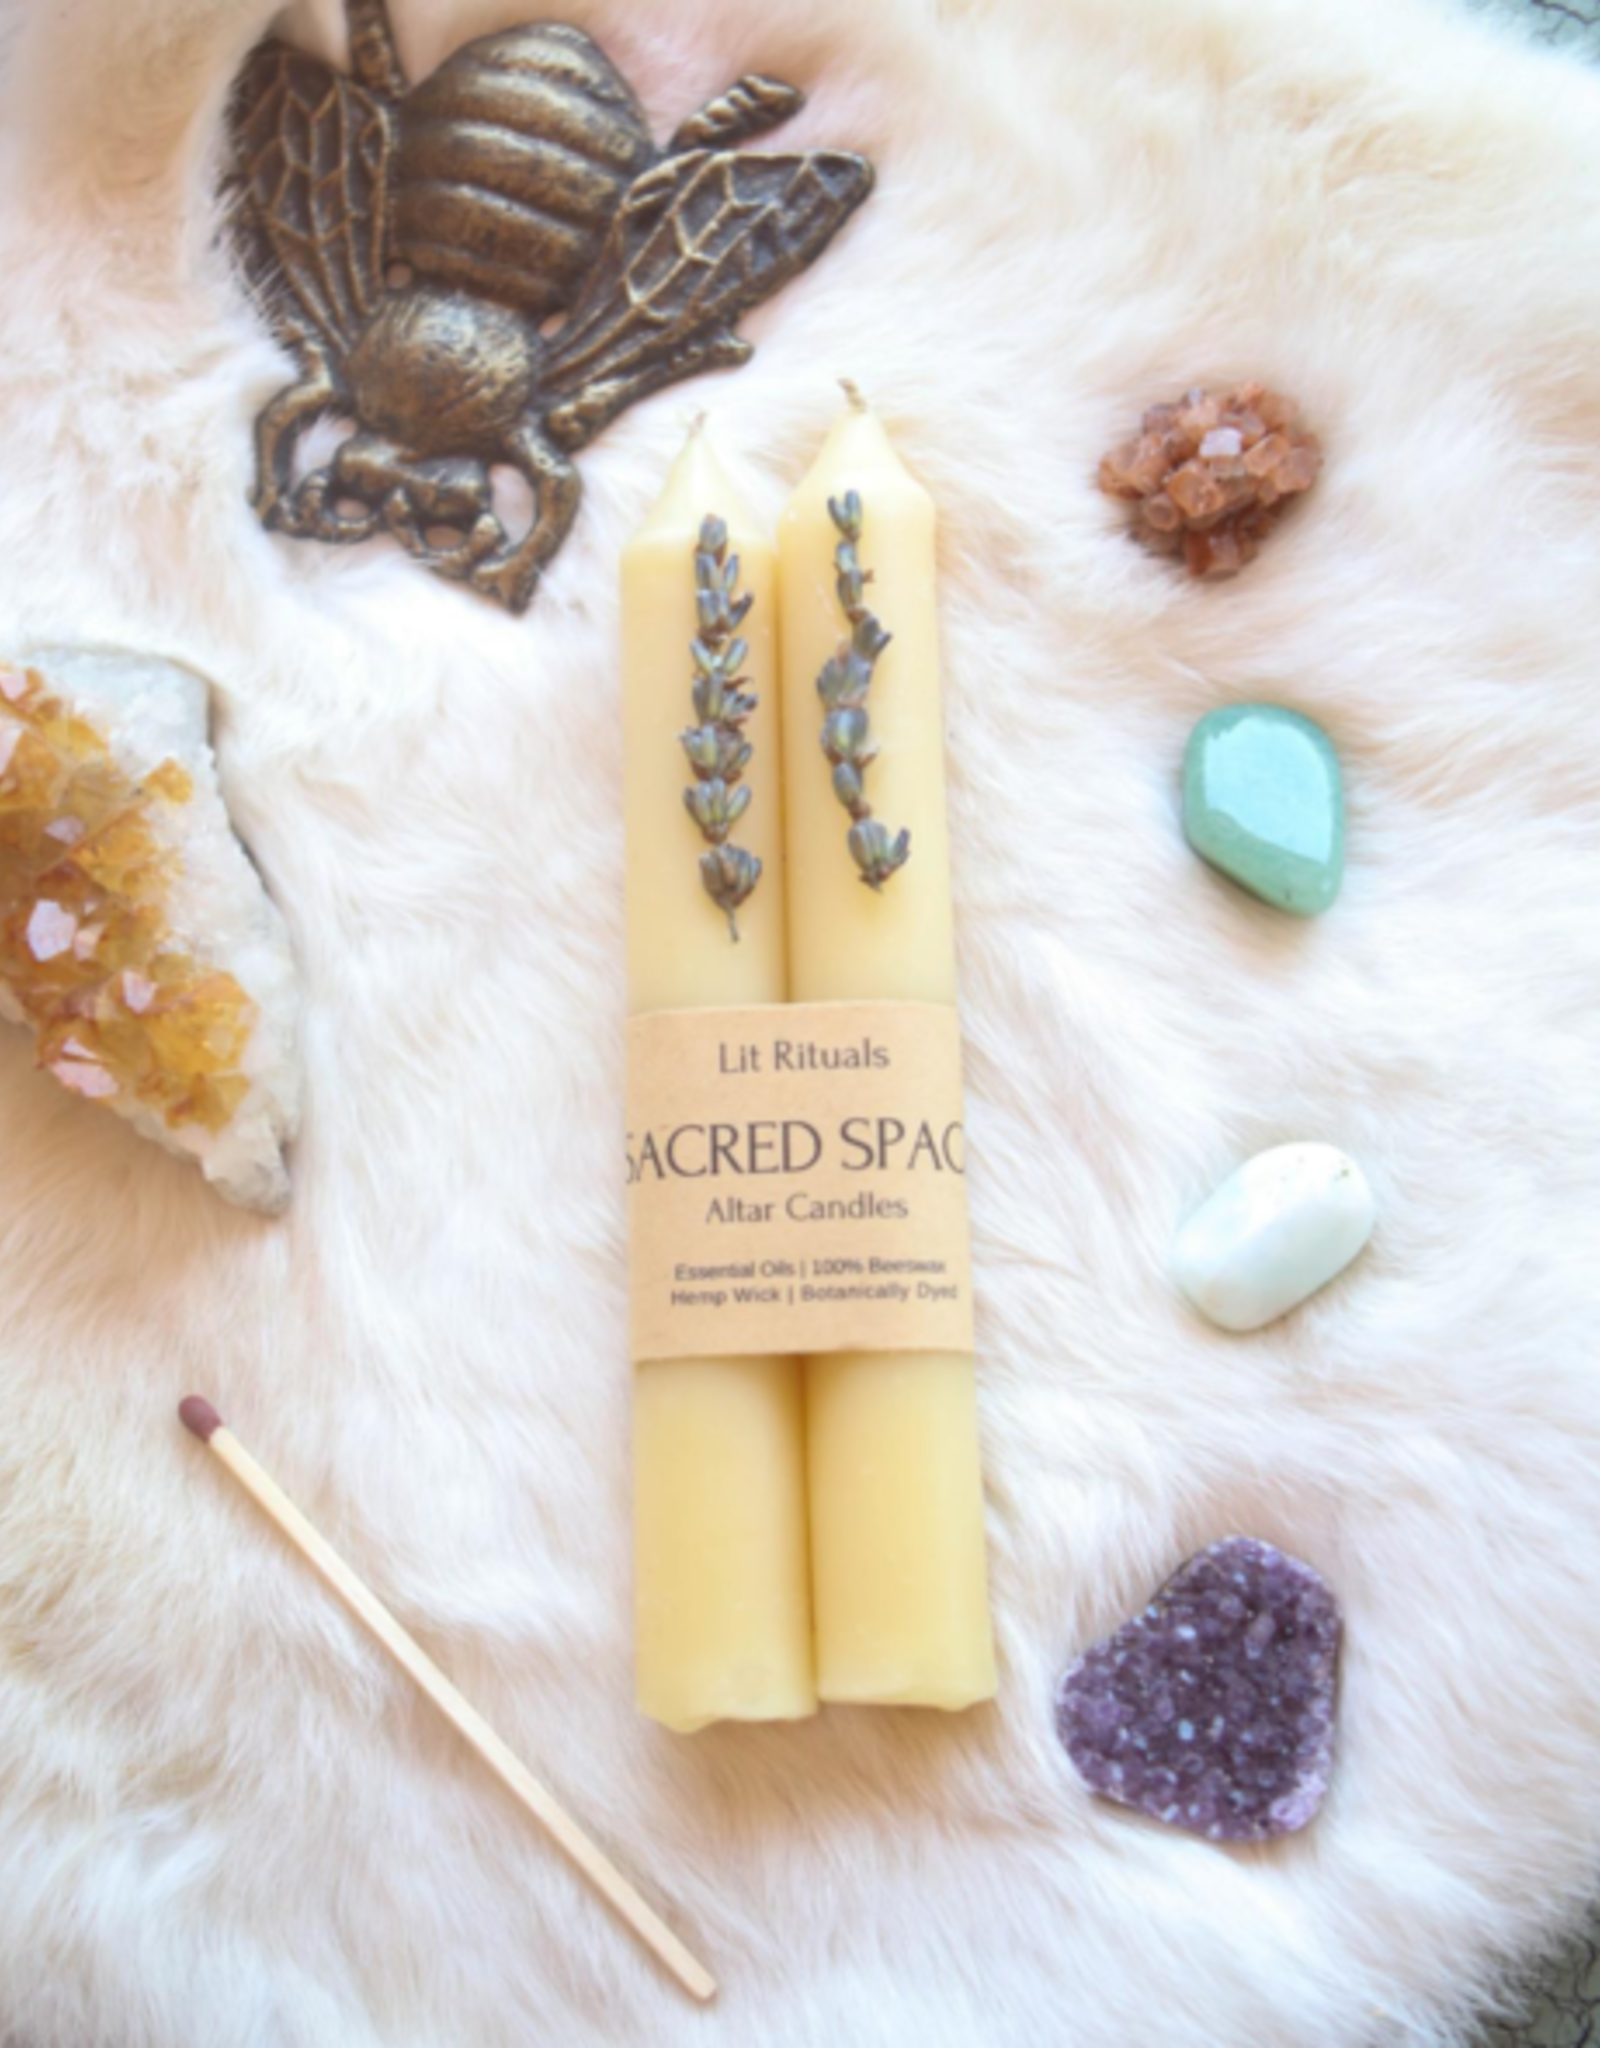 Litrituals Large 'Sacred Space' Beeswax Altar Candles